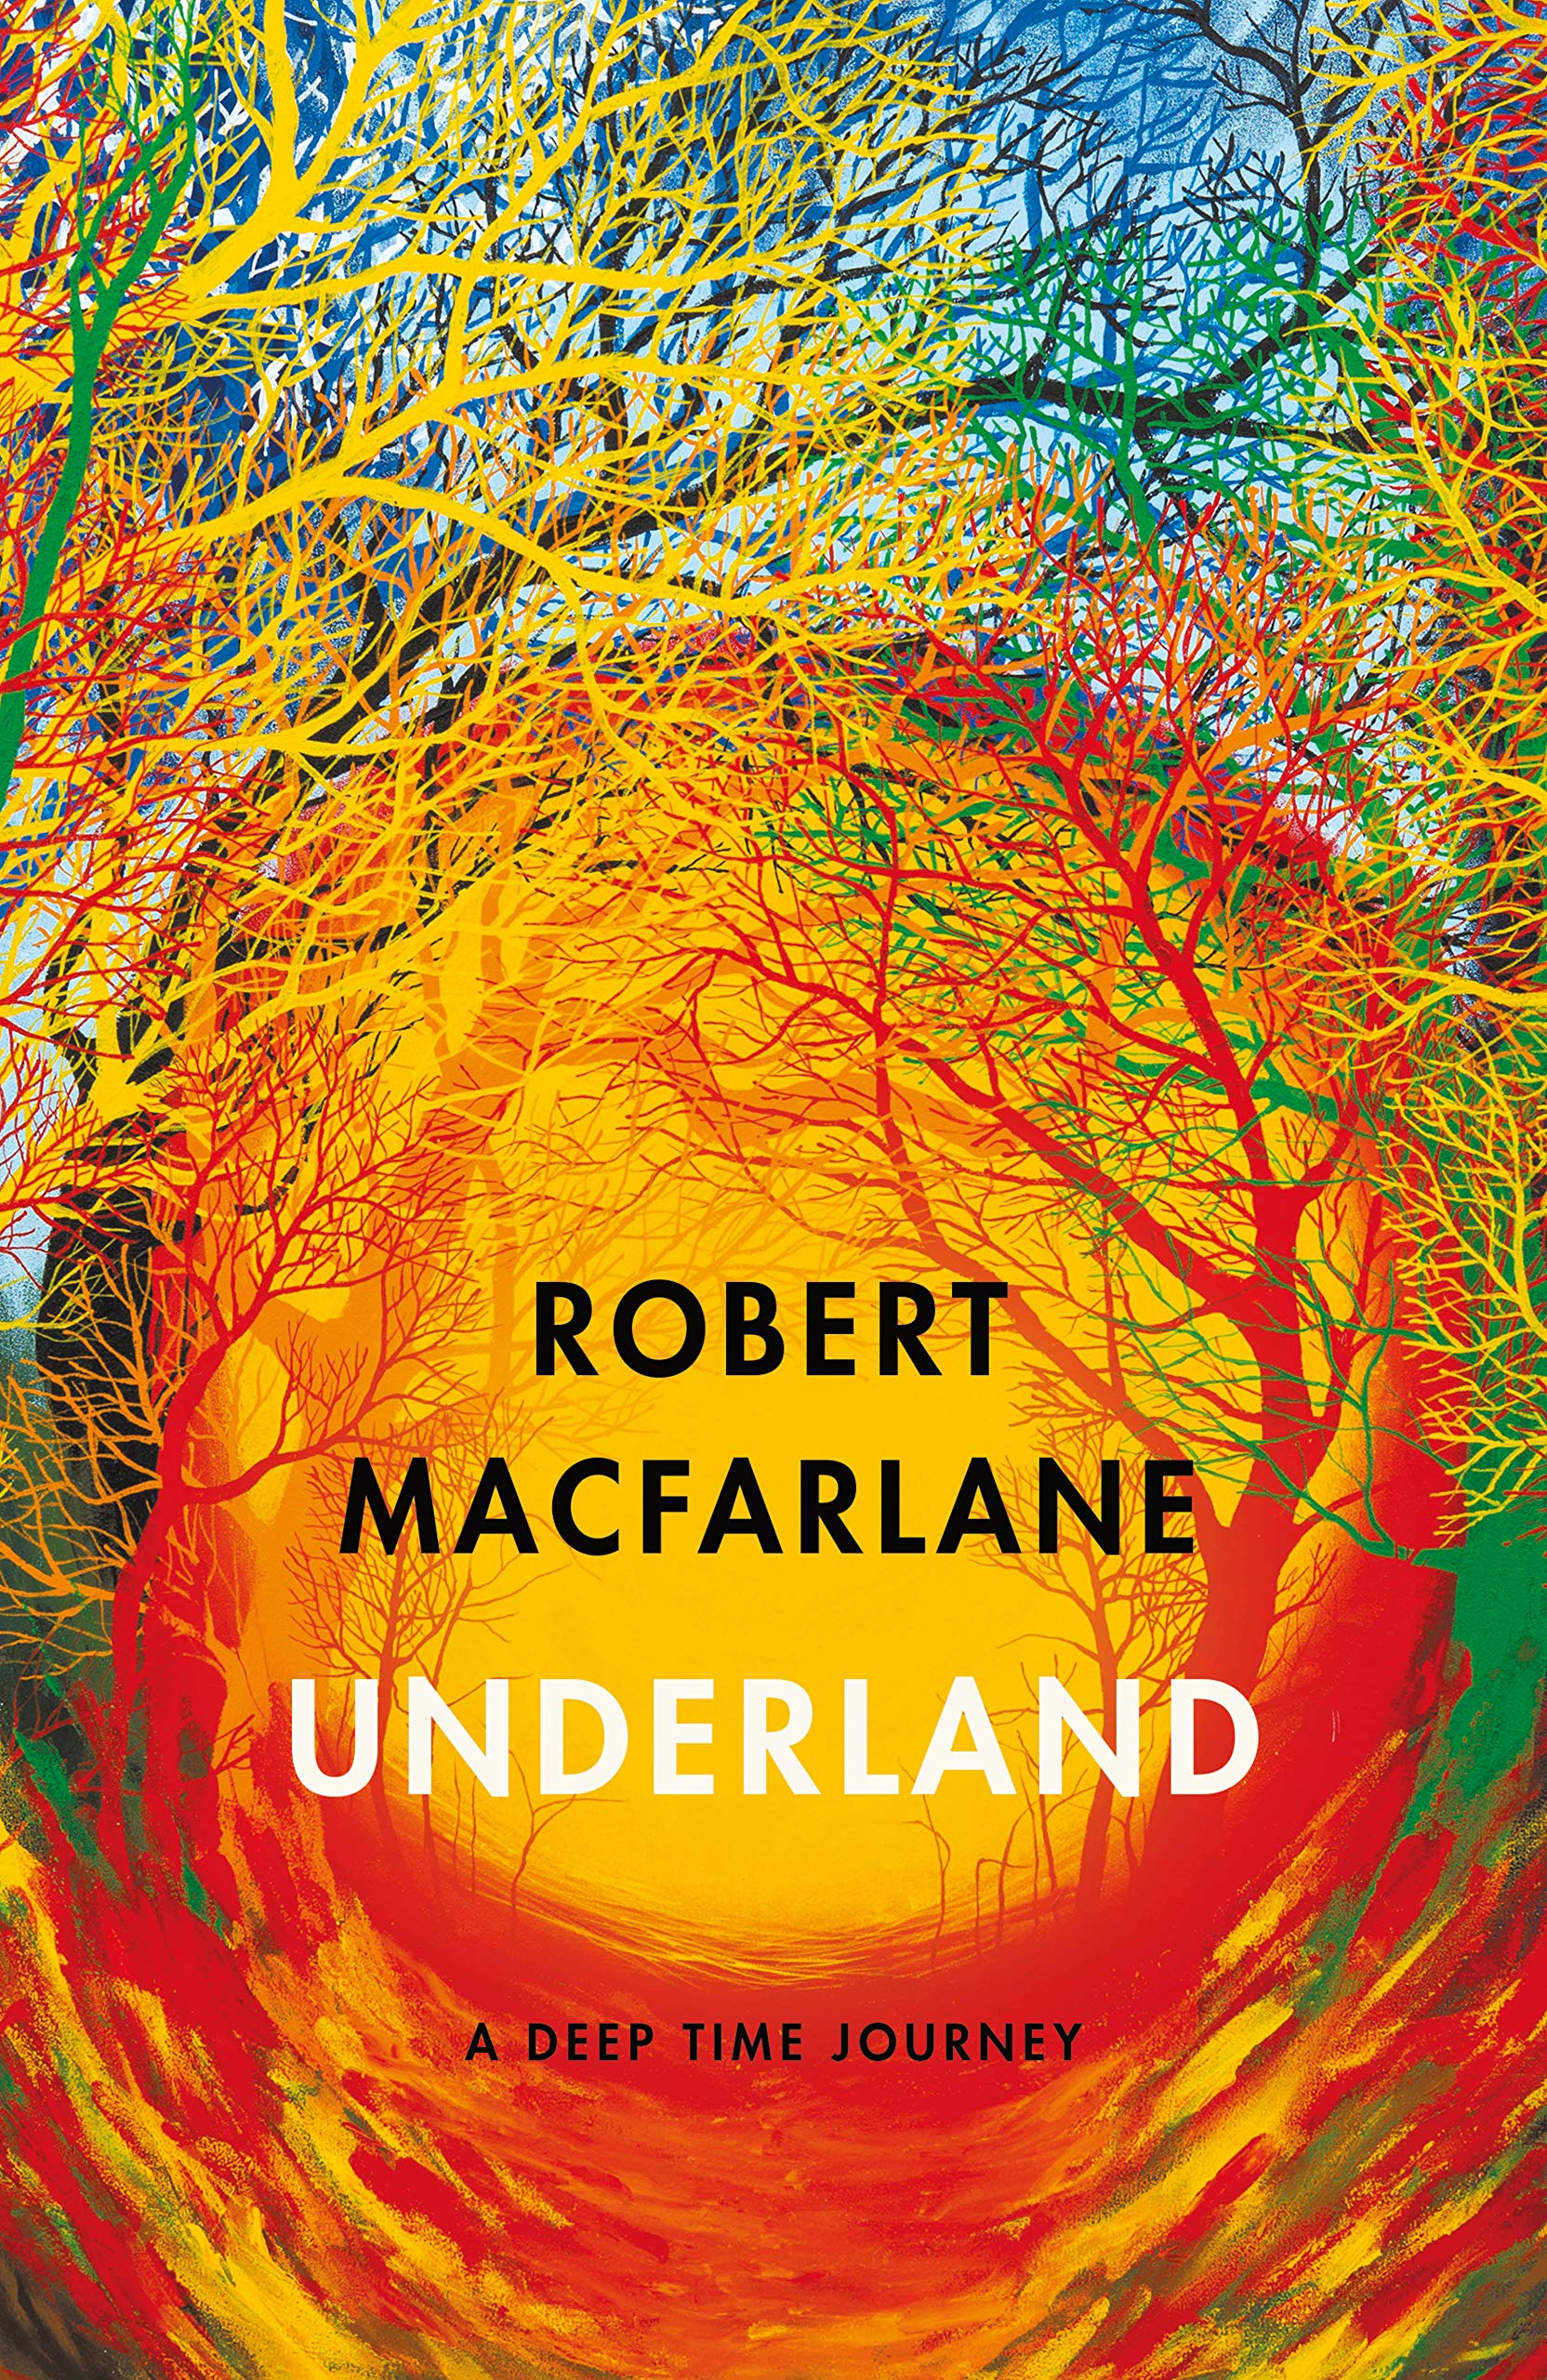 Underland: A Deep Time Journey: Amazon.co.uk: Macfarlane, Robert ...